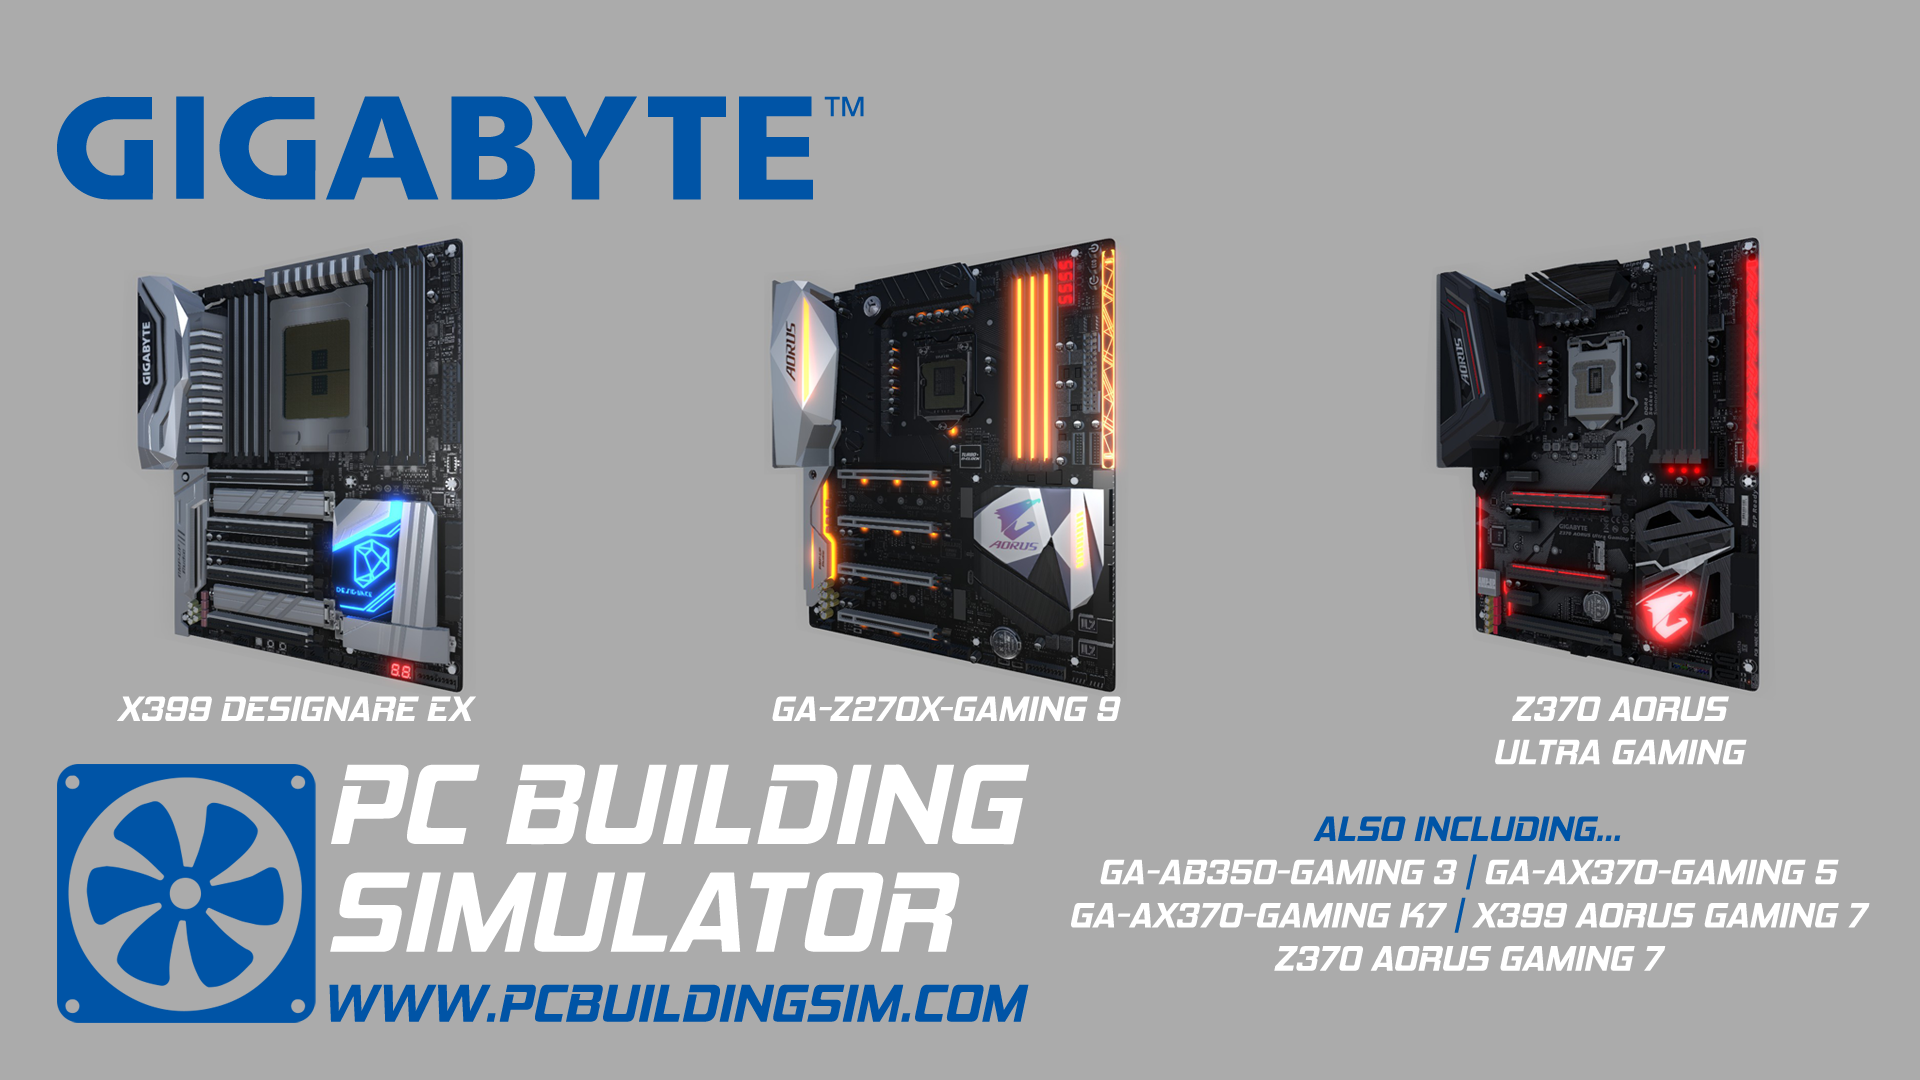 Pc Building Simulator Launches Tomorrow And Includes Gigabyte Ga Ax370 Gaming 5 Builders Will Have Several Motherboards To Choose From The Range Including Ab350 3 K7 9 X399 Series